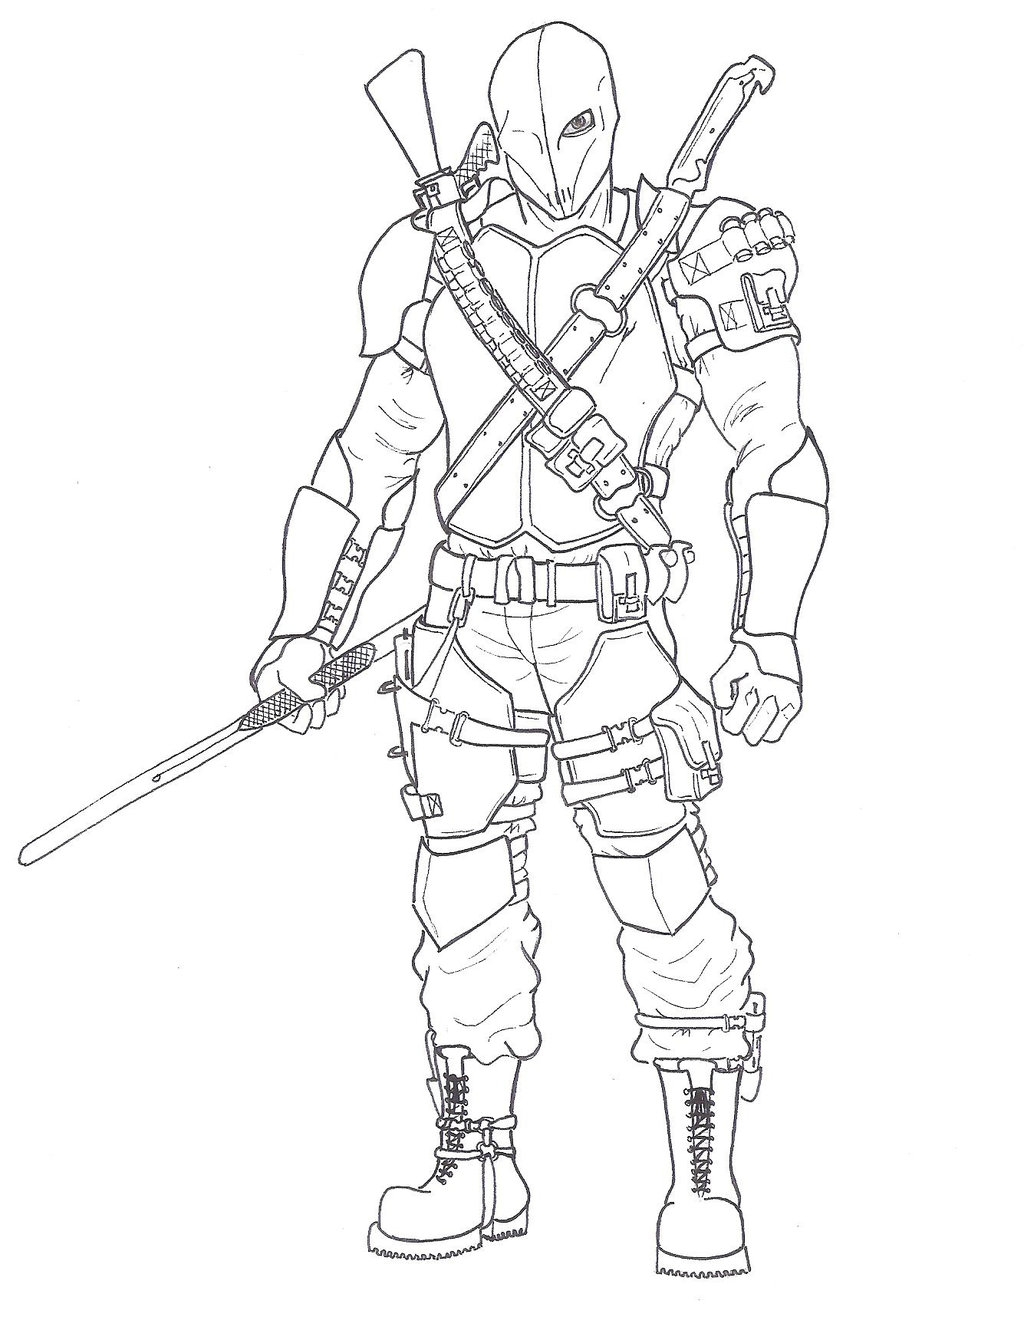 deathstroke coloring pages - stroke coloring pages for kidstml